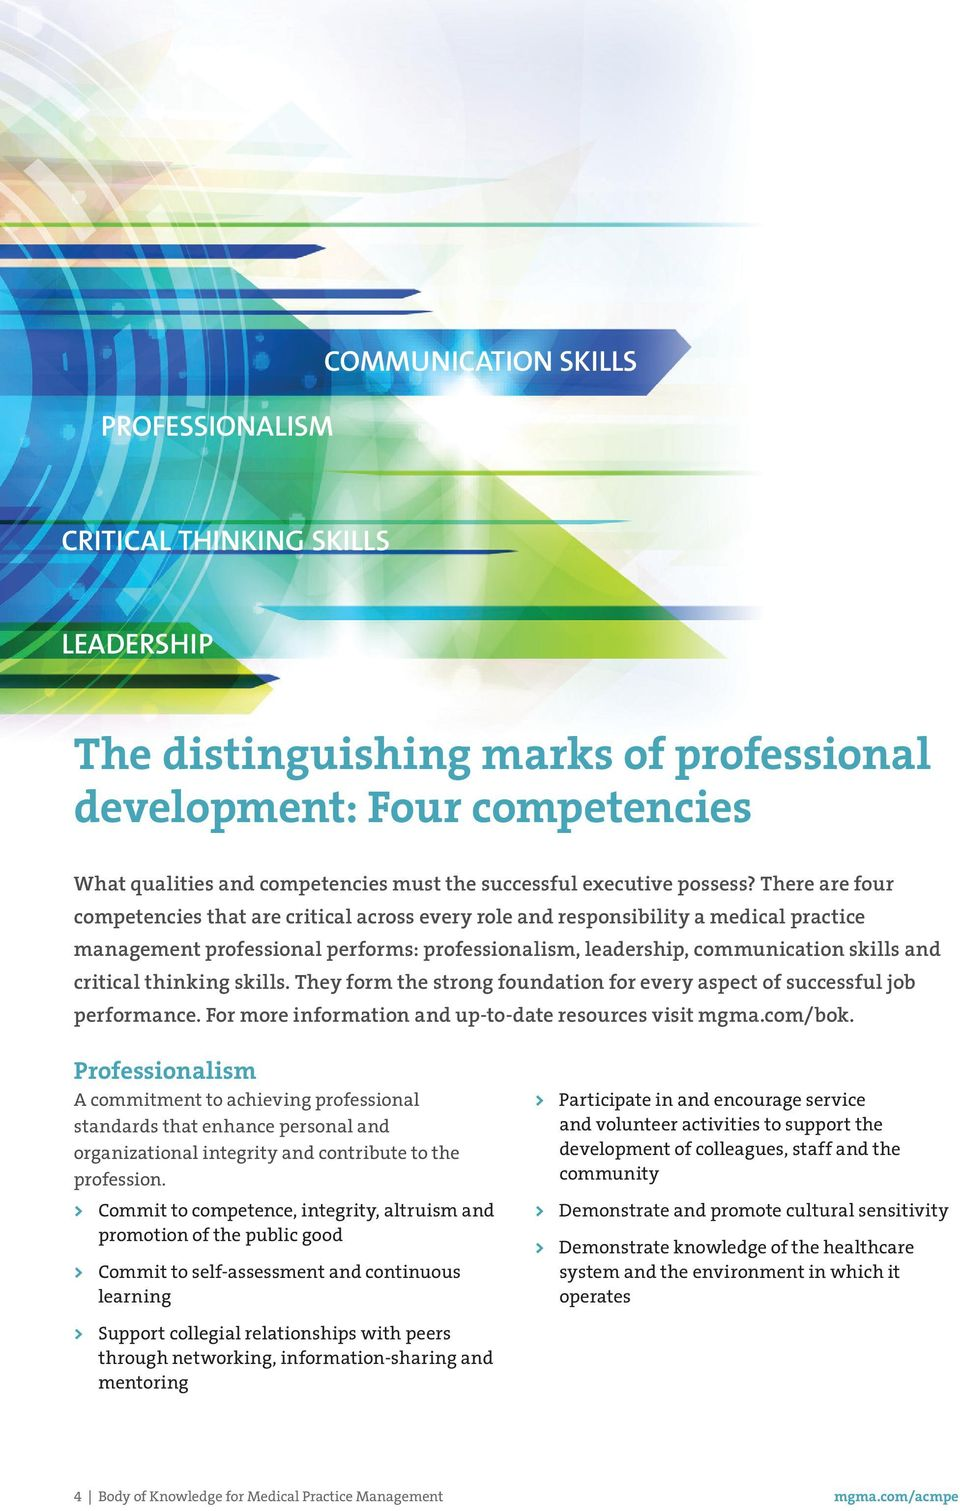 There are four competencies that are critical across every role and responsibility a medical practice management professional performs: professionalism, leadership, communication skills and critical